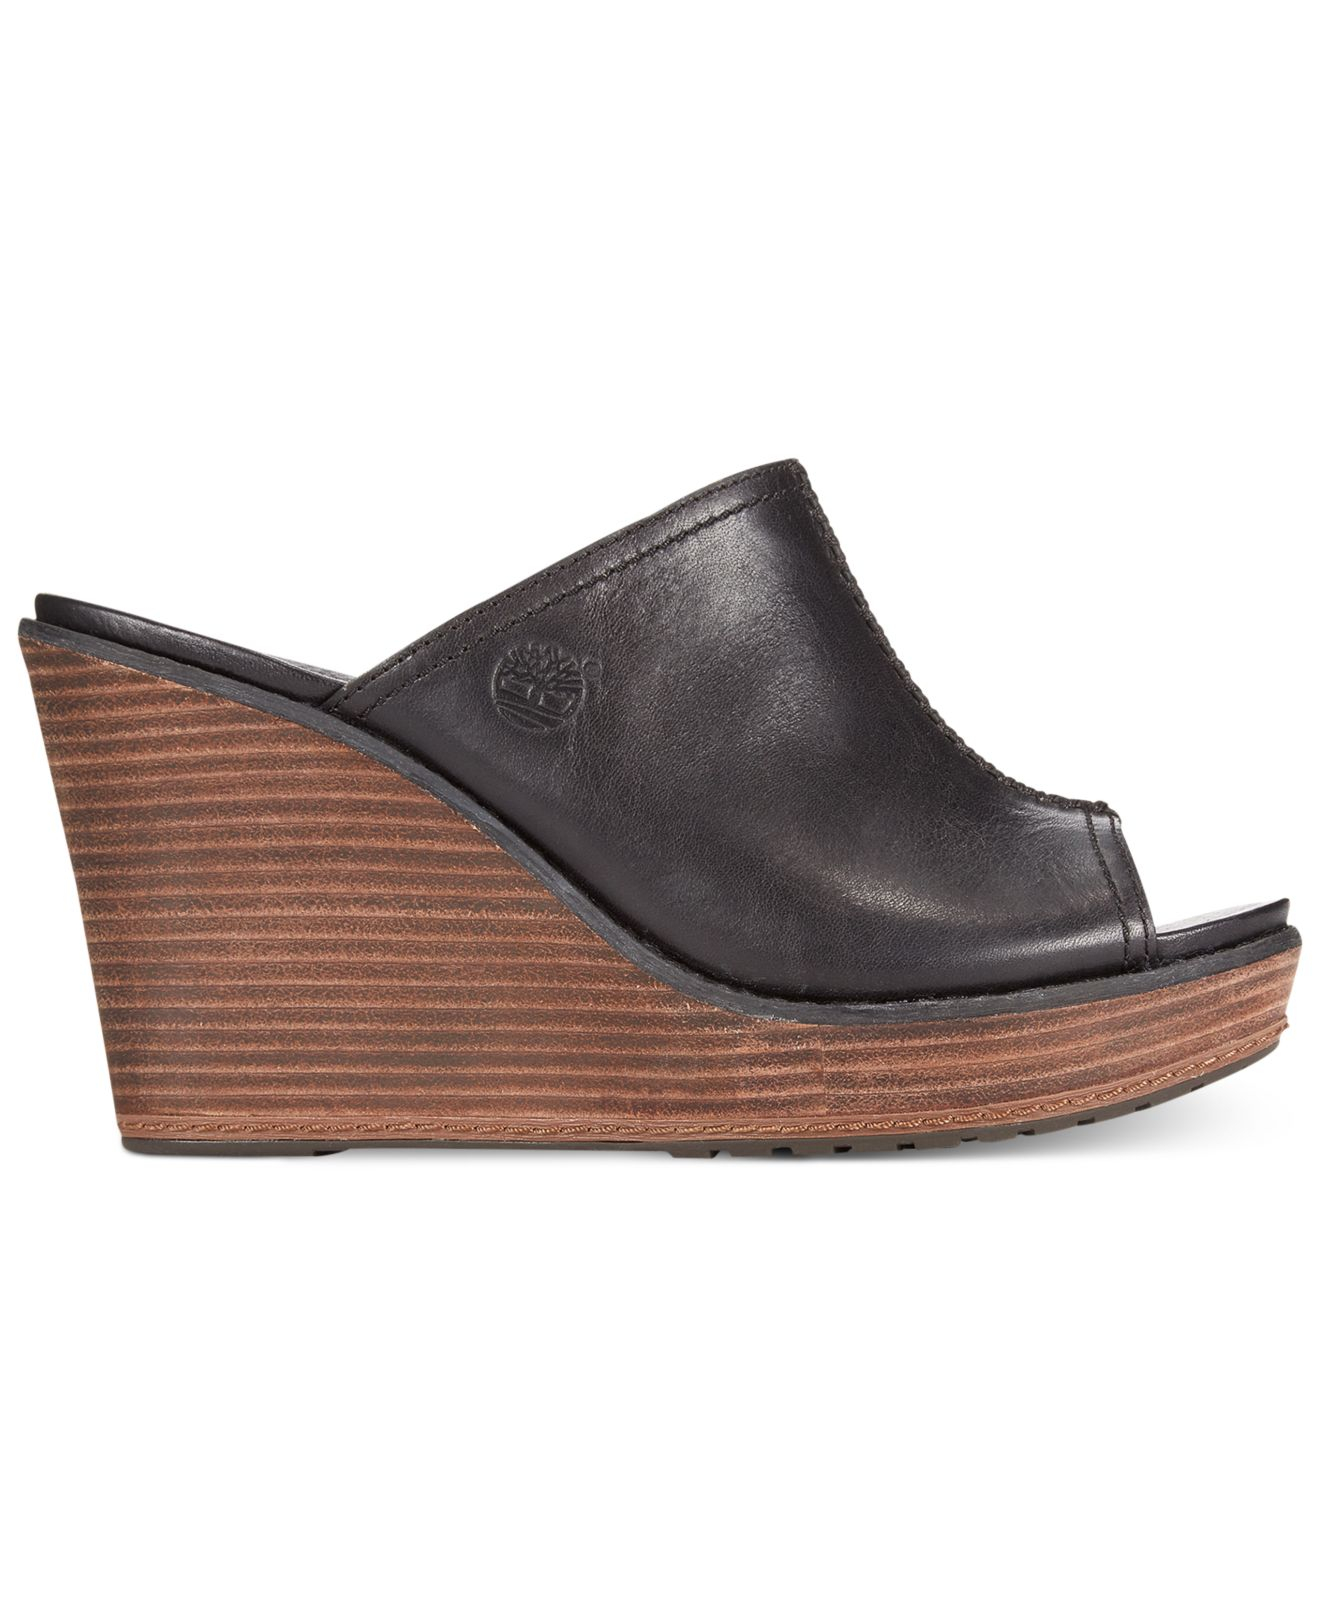 danforth black single women Shop timberland women's danforth woven wedge at shoolucom | premium full-grain leather upper for comfort and durability adjustable ankle strap for a custom fit.